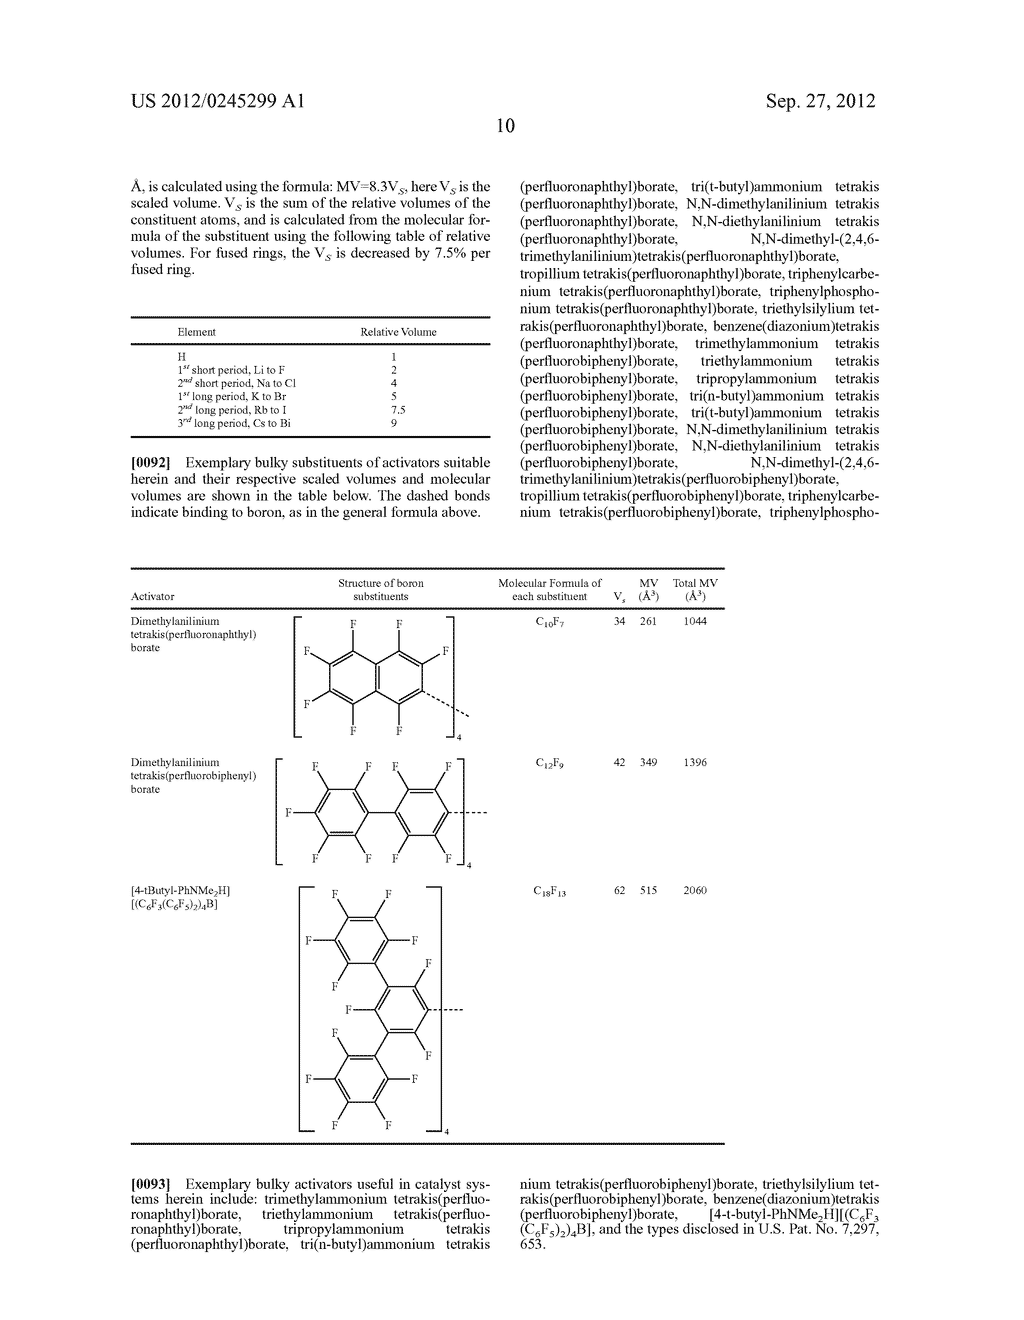 Branched Vinyl Terminated Polymers And Methods For Production Thereof - diagram, schematic, and image 12